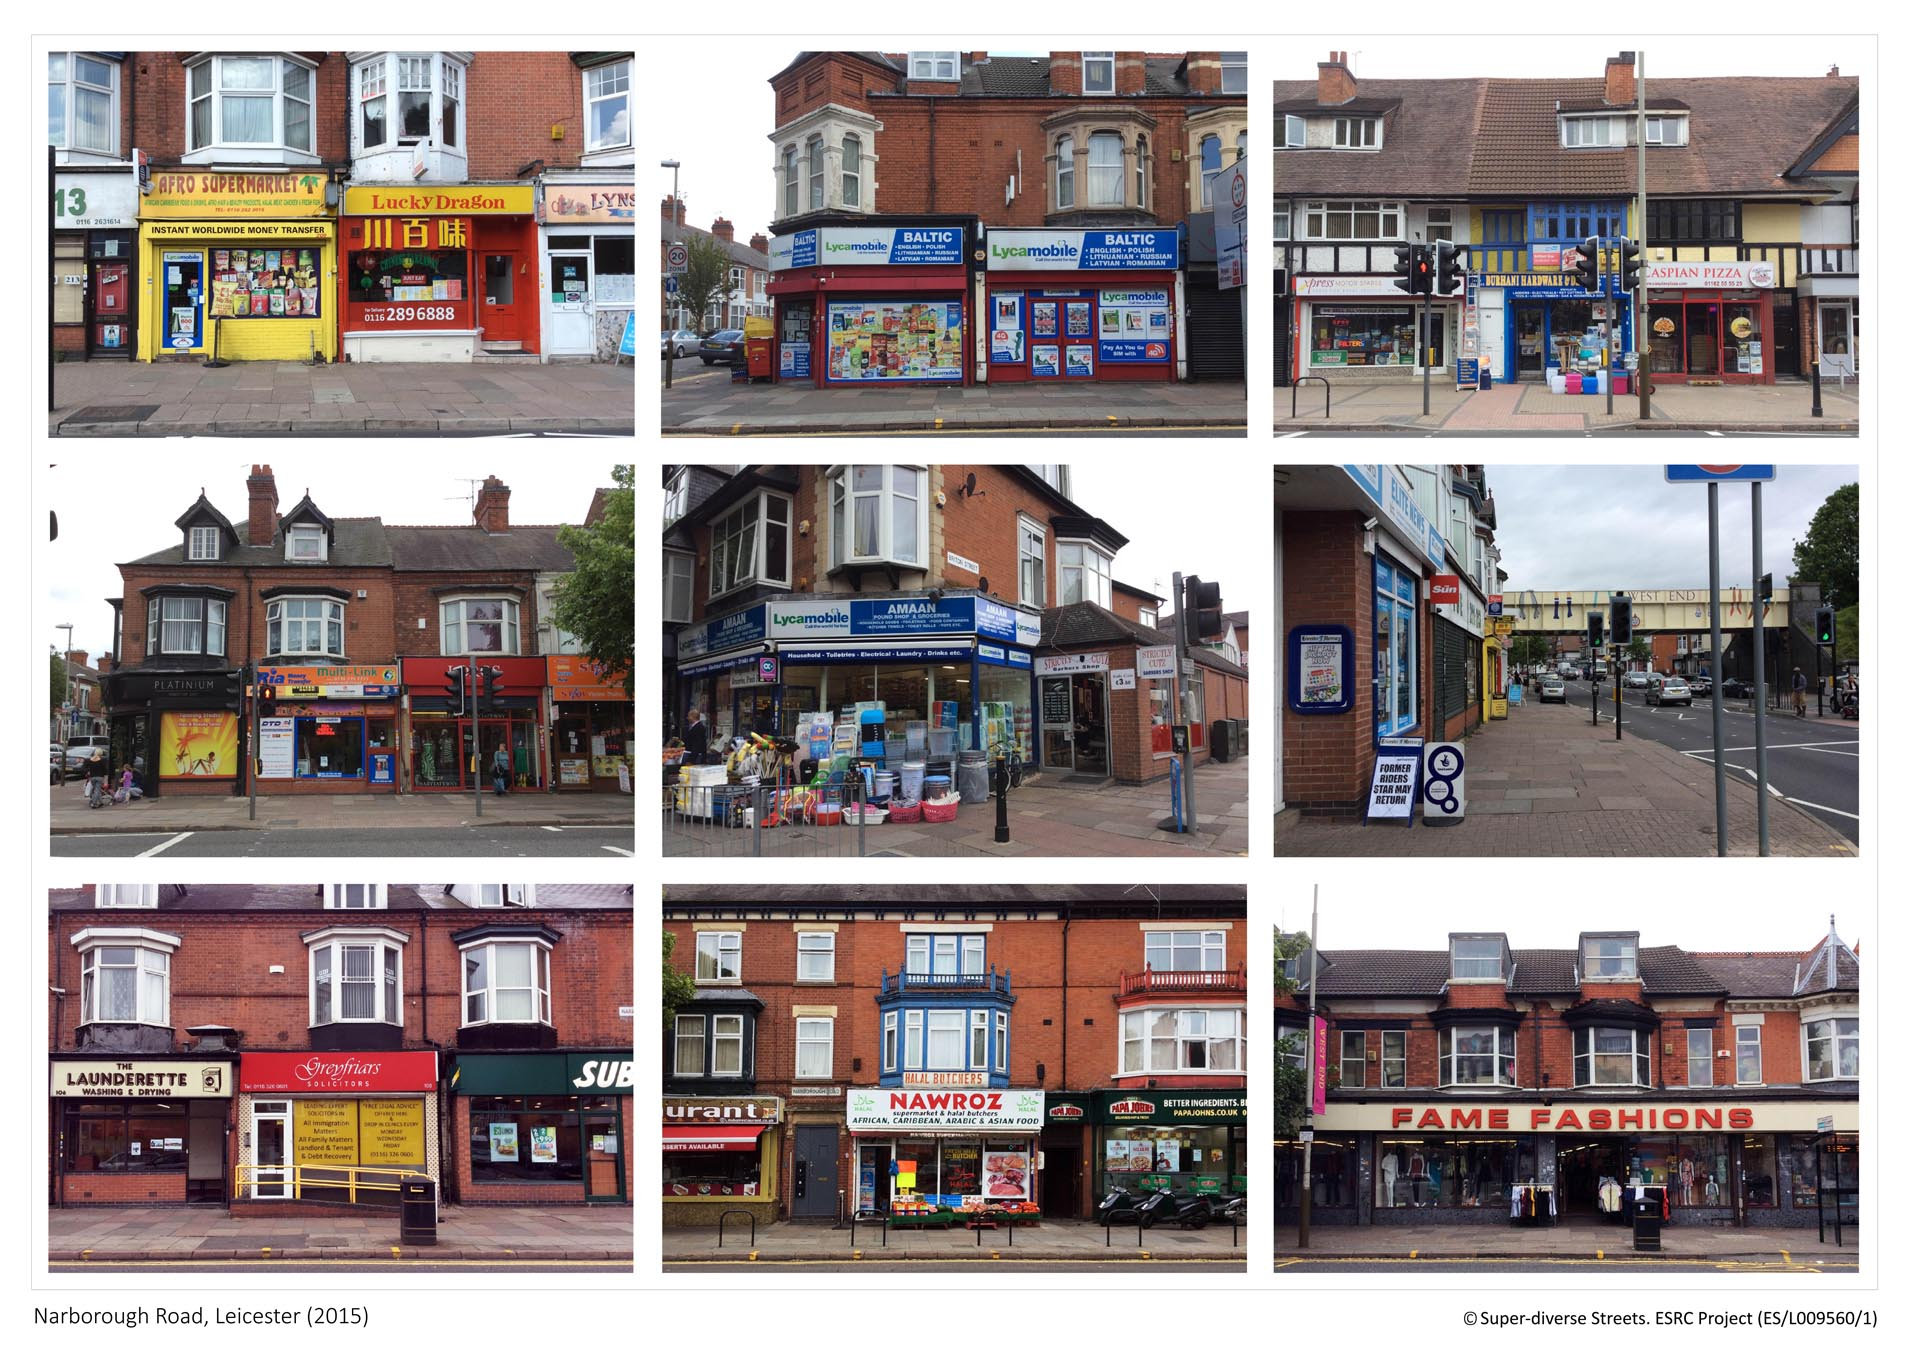 Narborough Road, Leicester - Streetscape